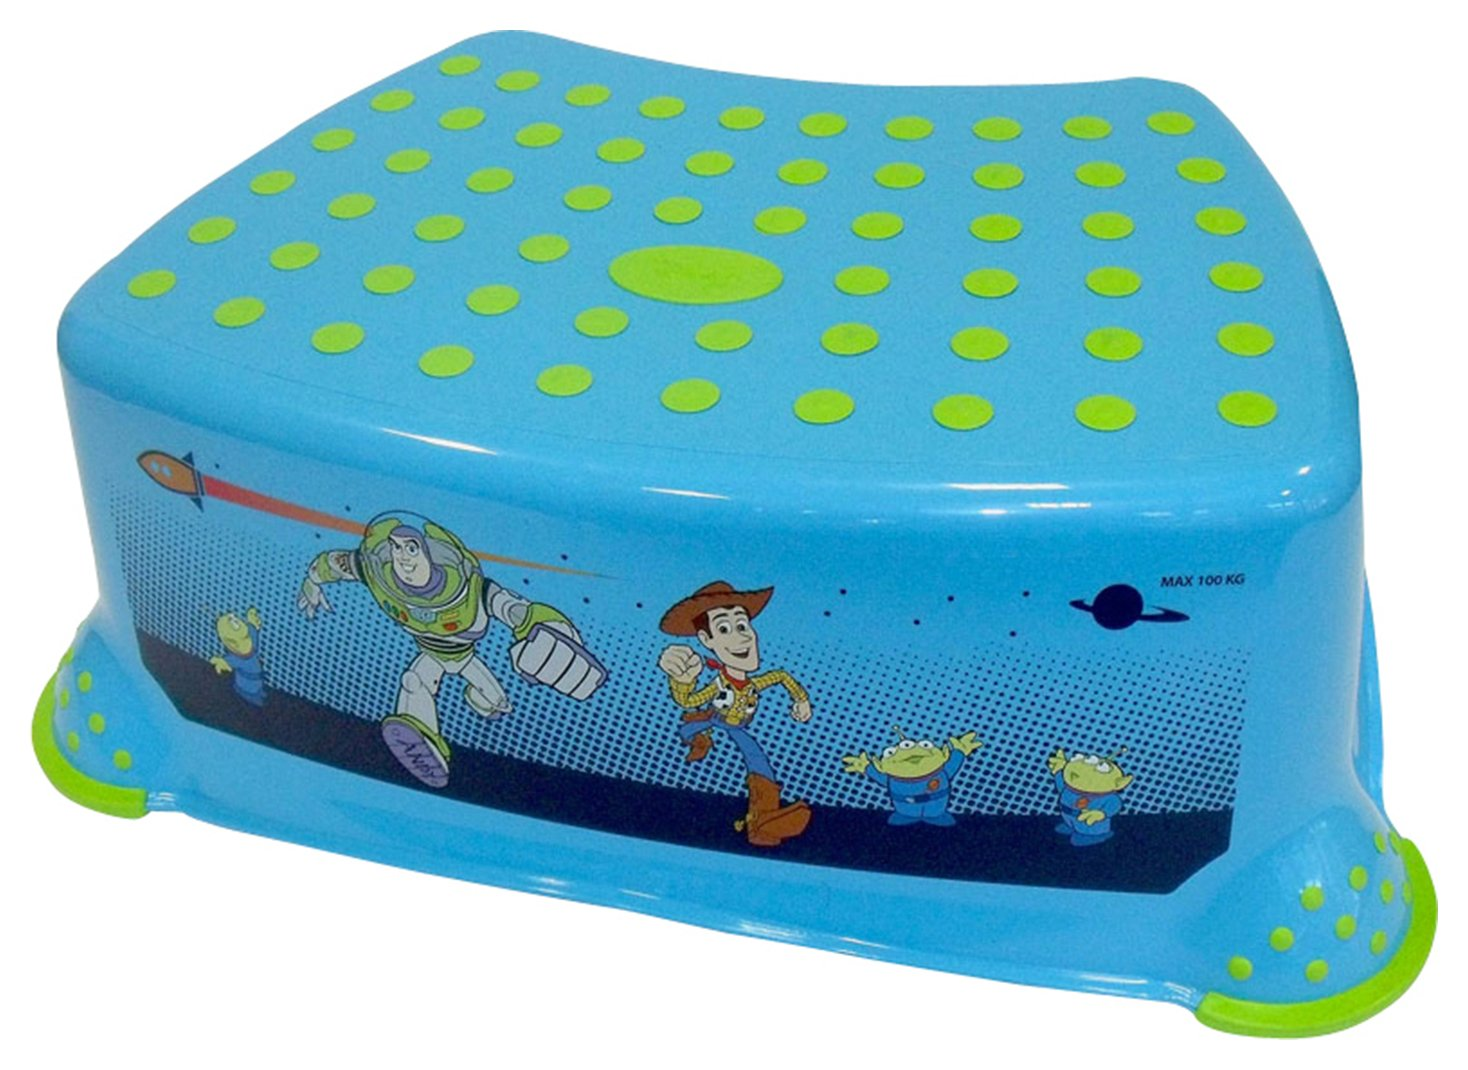 Toy Story Stool : Disney toy story step stool review